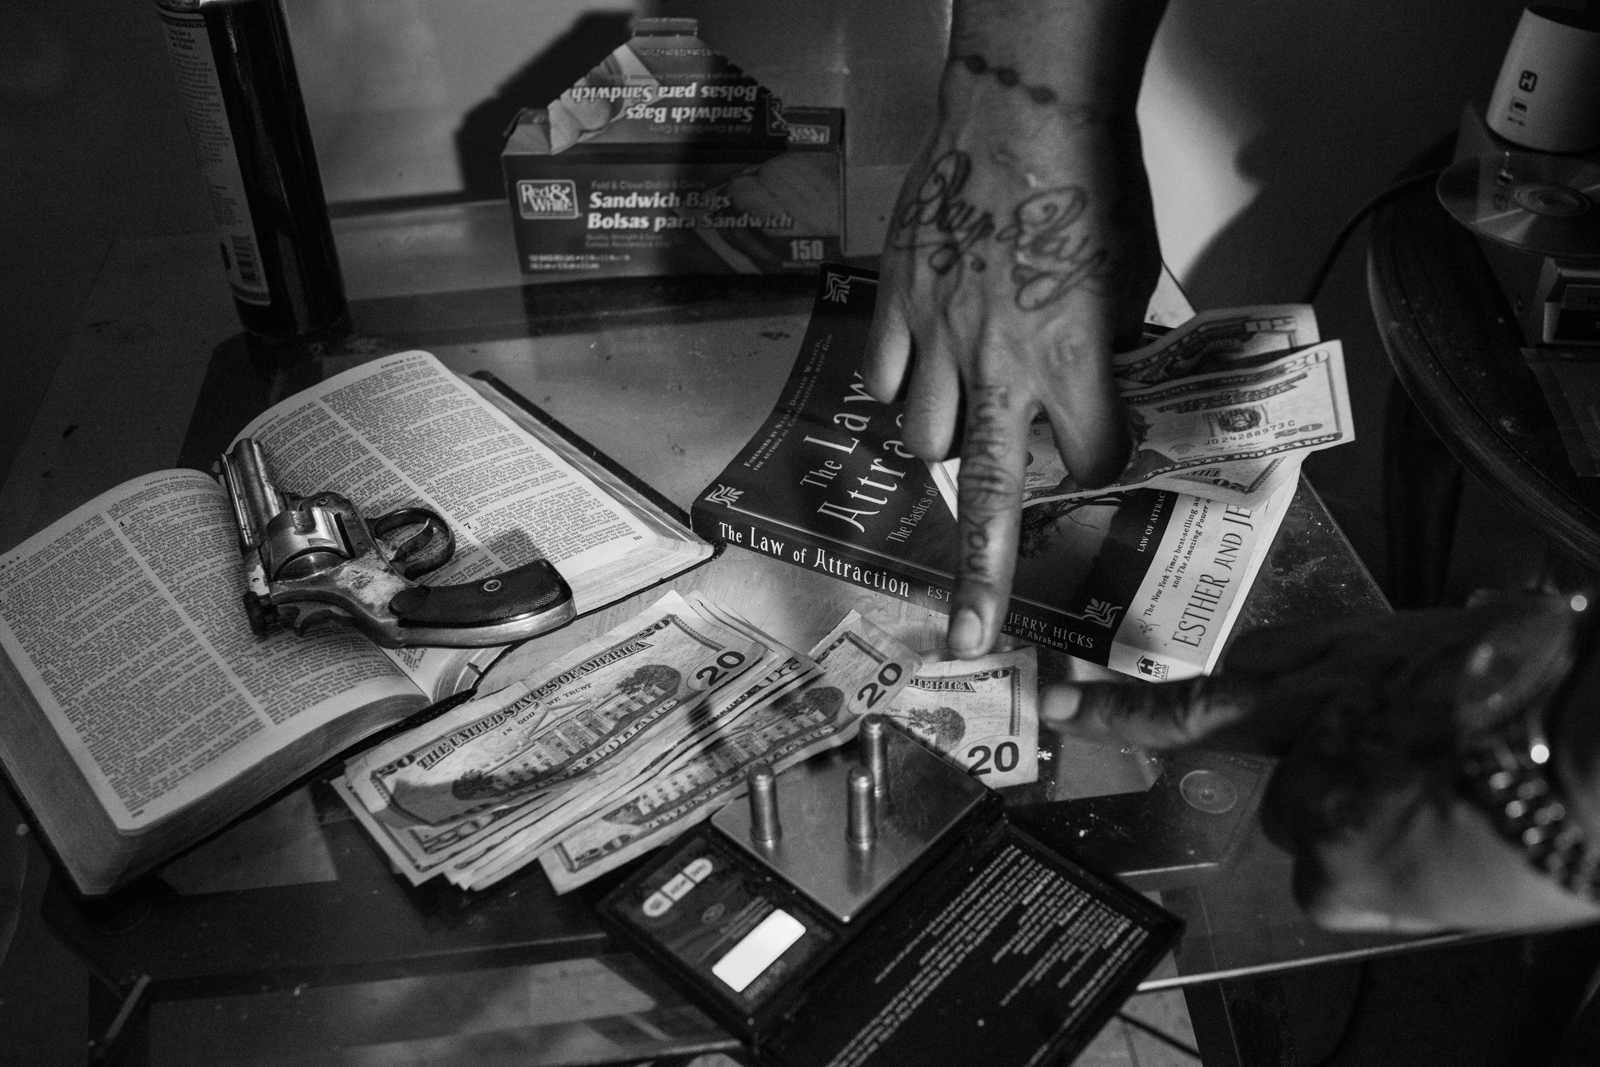 Teflon shows the table where he has displayed a gun laying on top of a Bible, several bullets, a balance for drugs and a book of the law of attraction, drug dealing and violence are part of the daily lives of gang members in New York.